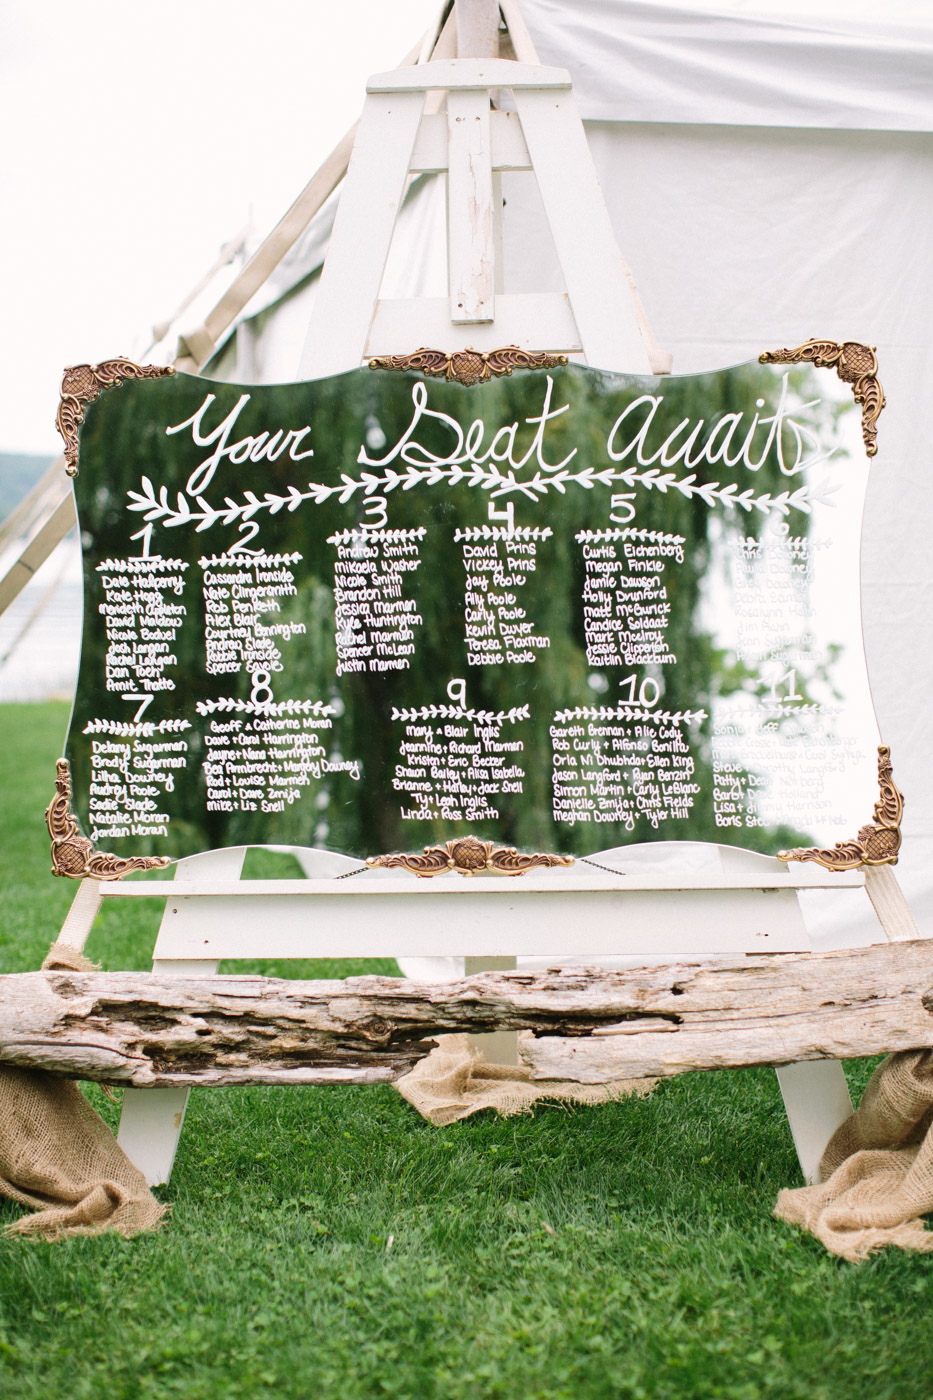 Backyard_collingwood_waterfront_diy_wedding-10.jpg